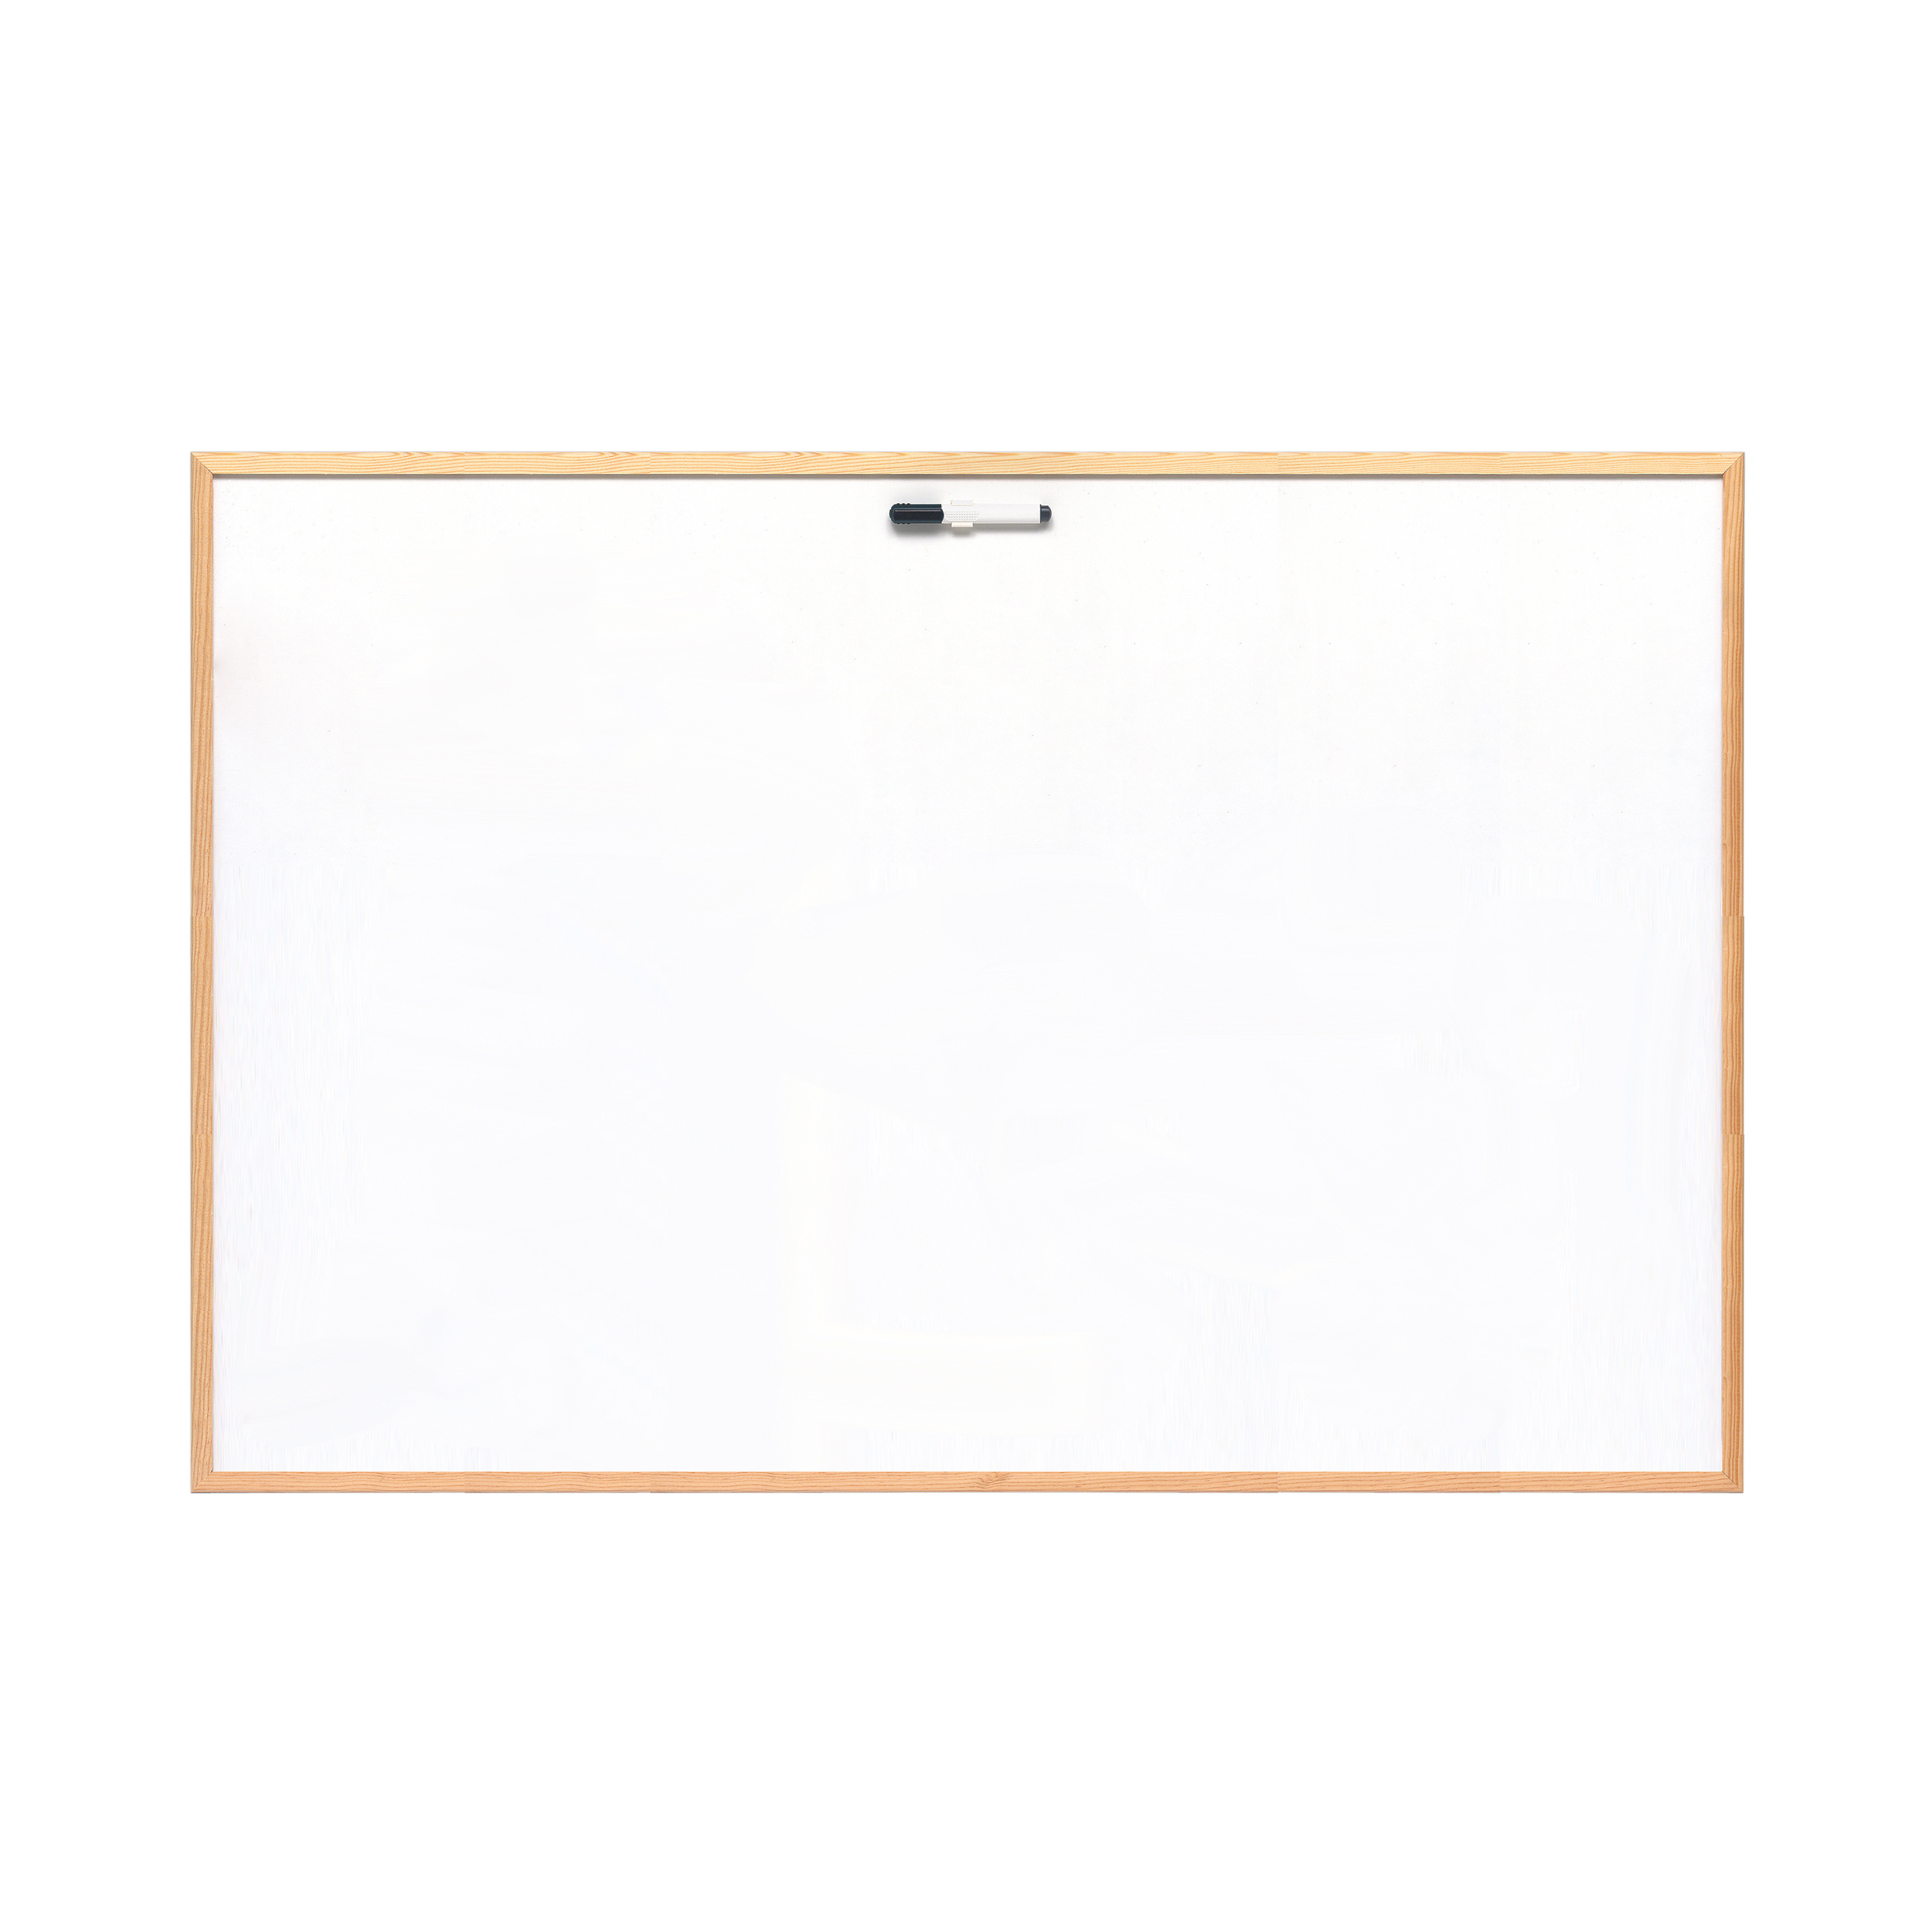 Dry erase boards or accessories 5 Star Lightweight Drywipe Board W1200xH900mm Pine Frame